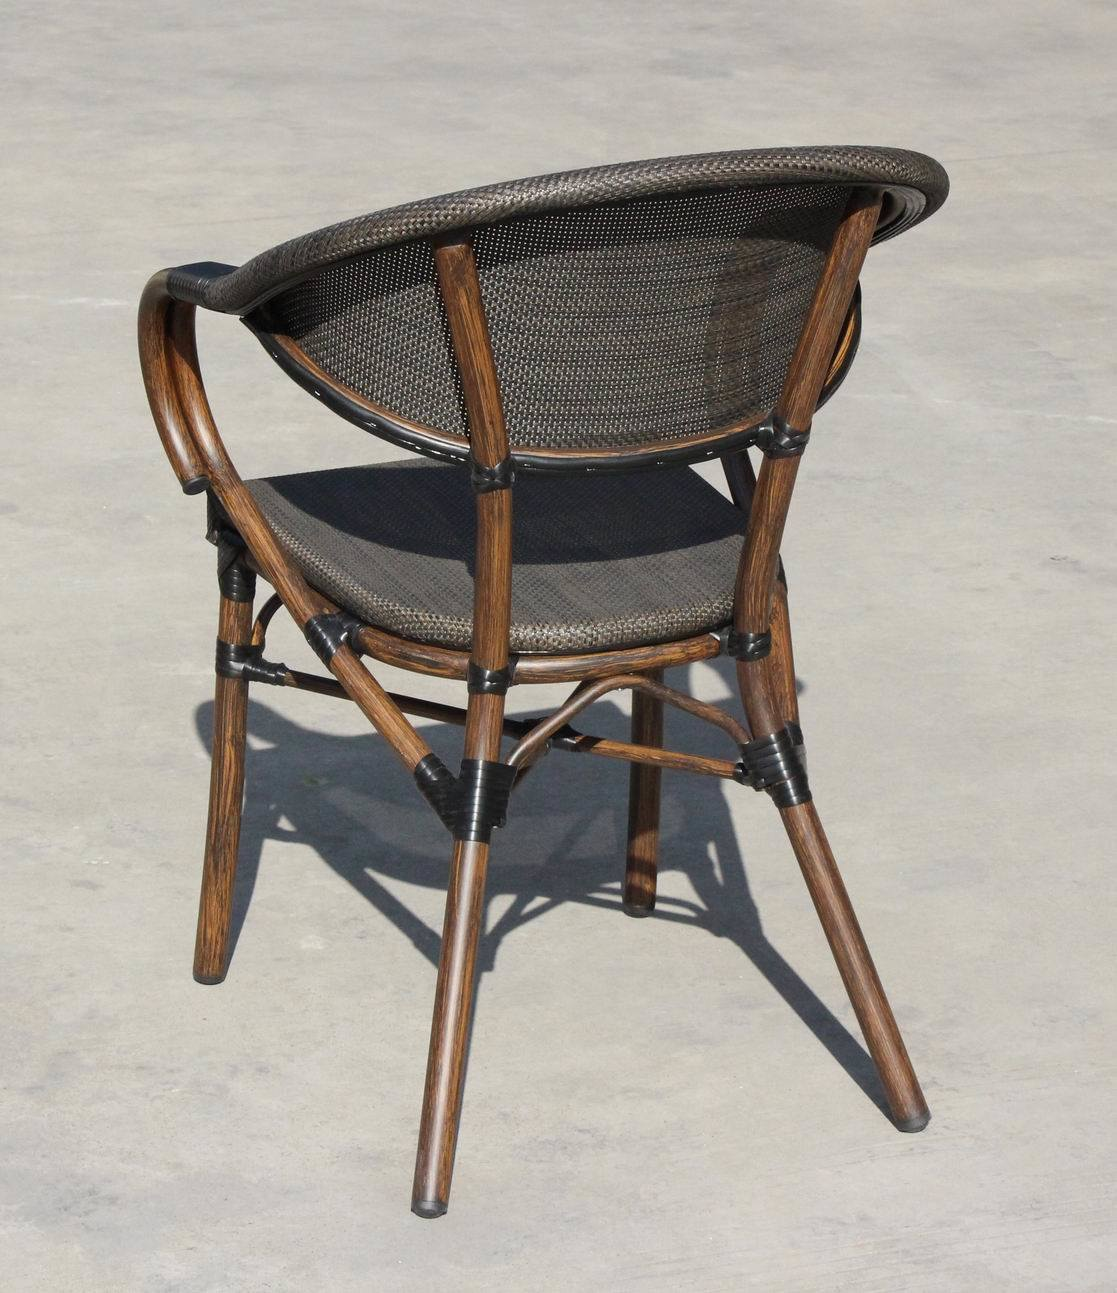 Alu. Bamboo Textylene Starbucks Outdoor Chair